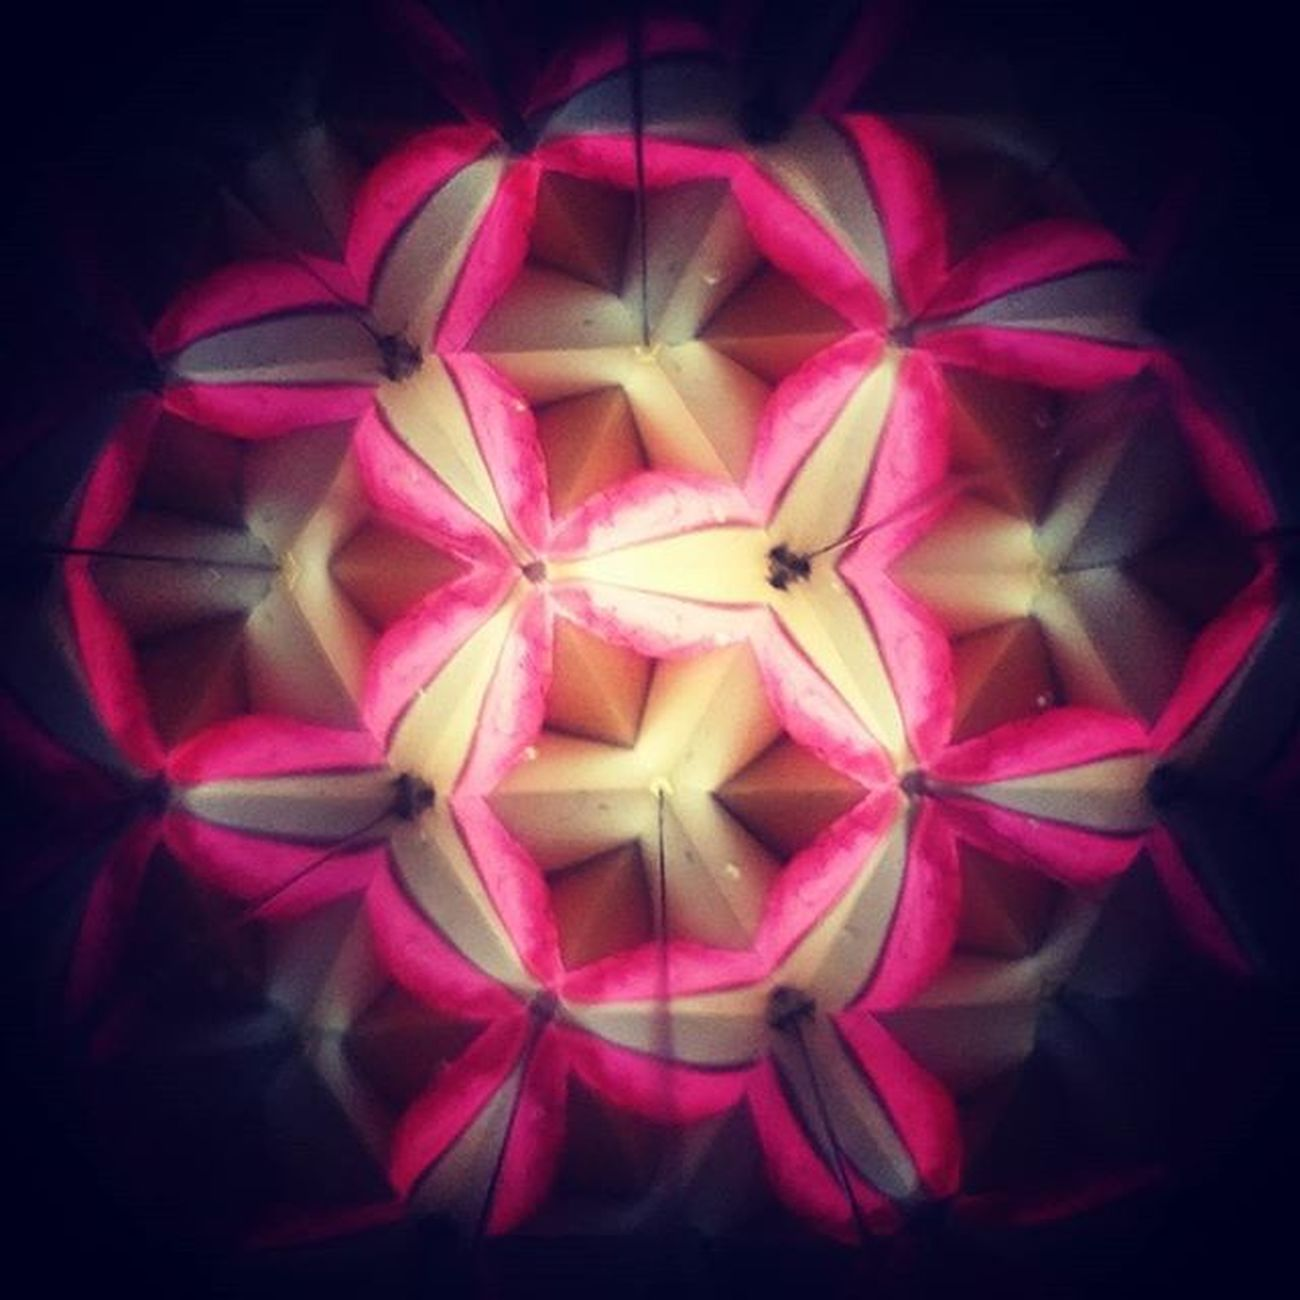 Kaleidoscope Coulors Pointofview Prospectives See Look Eyes Shadows Lights Coulorpic Coulorpicture Picoftheday Morning Dailyphoto AnotherDay Me Imagine Instagood Instalife Photooftheday True Truecolors Kaleidopic Kaleido1